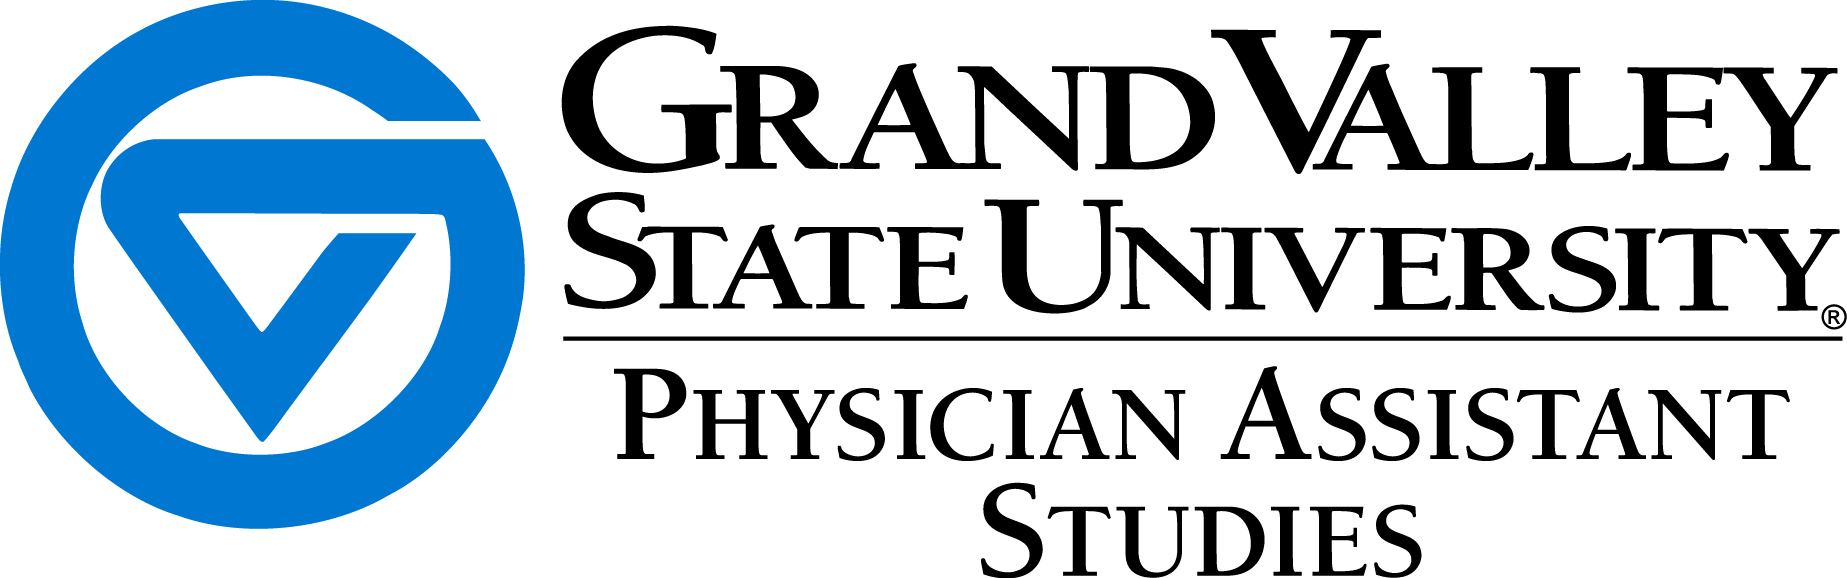 Grand Valley State University, College of Health Professions, Physician Assistant Studies